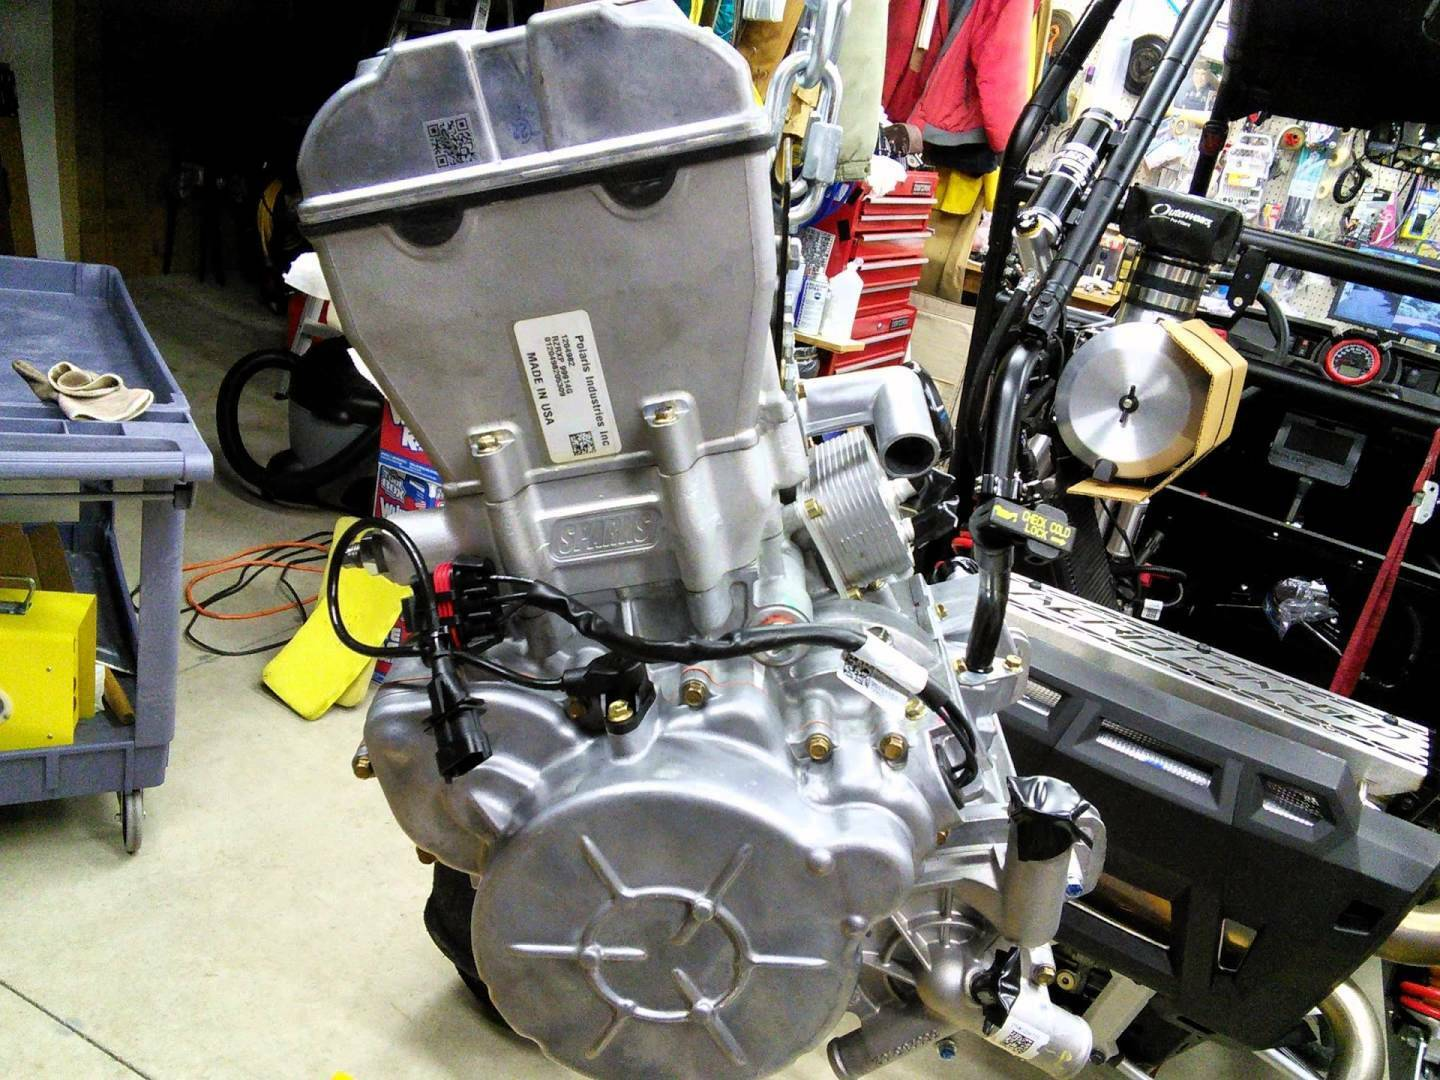 POLARIS RZR 1000 XP RANGER 1000 COMPLETE ENGINE MOTOR REBUILD PARTS LABOR 1000XP